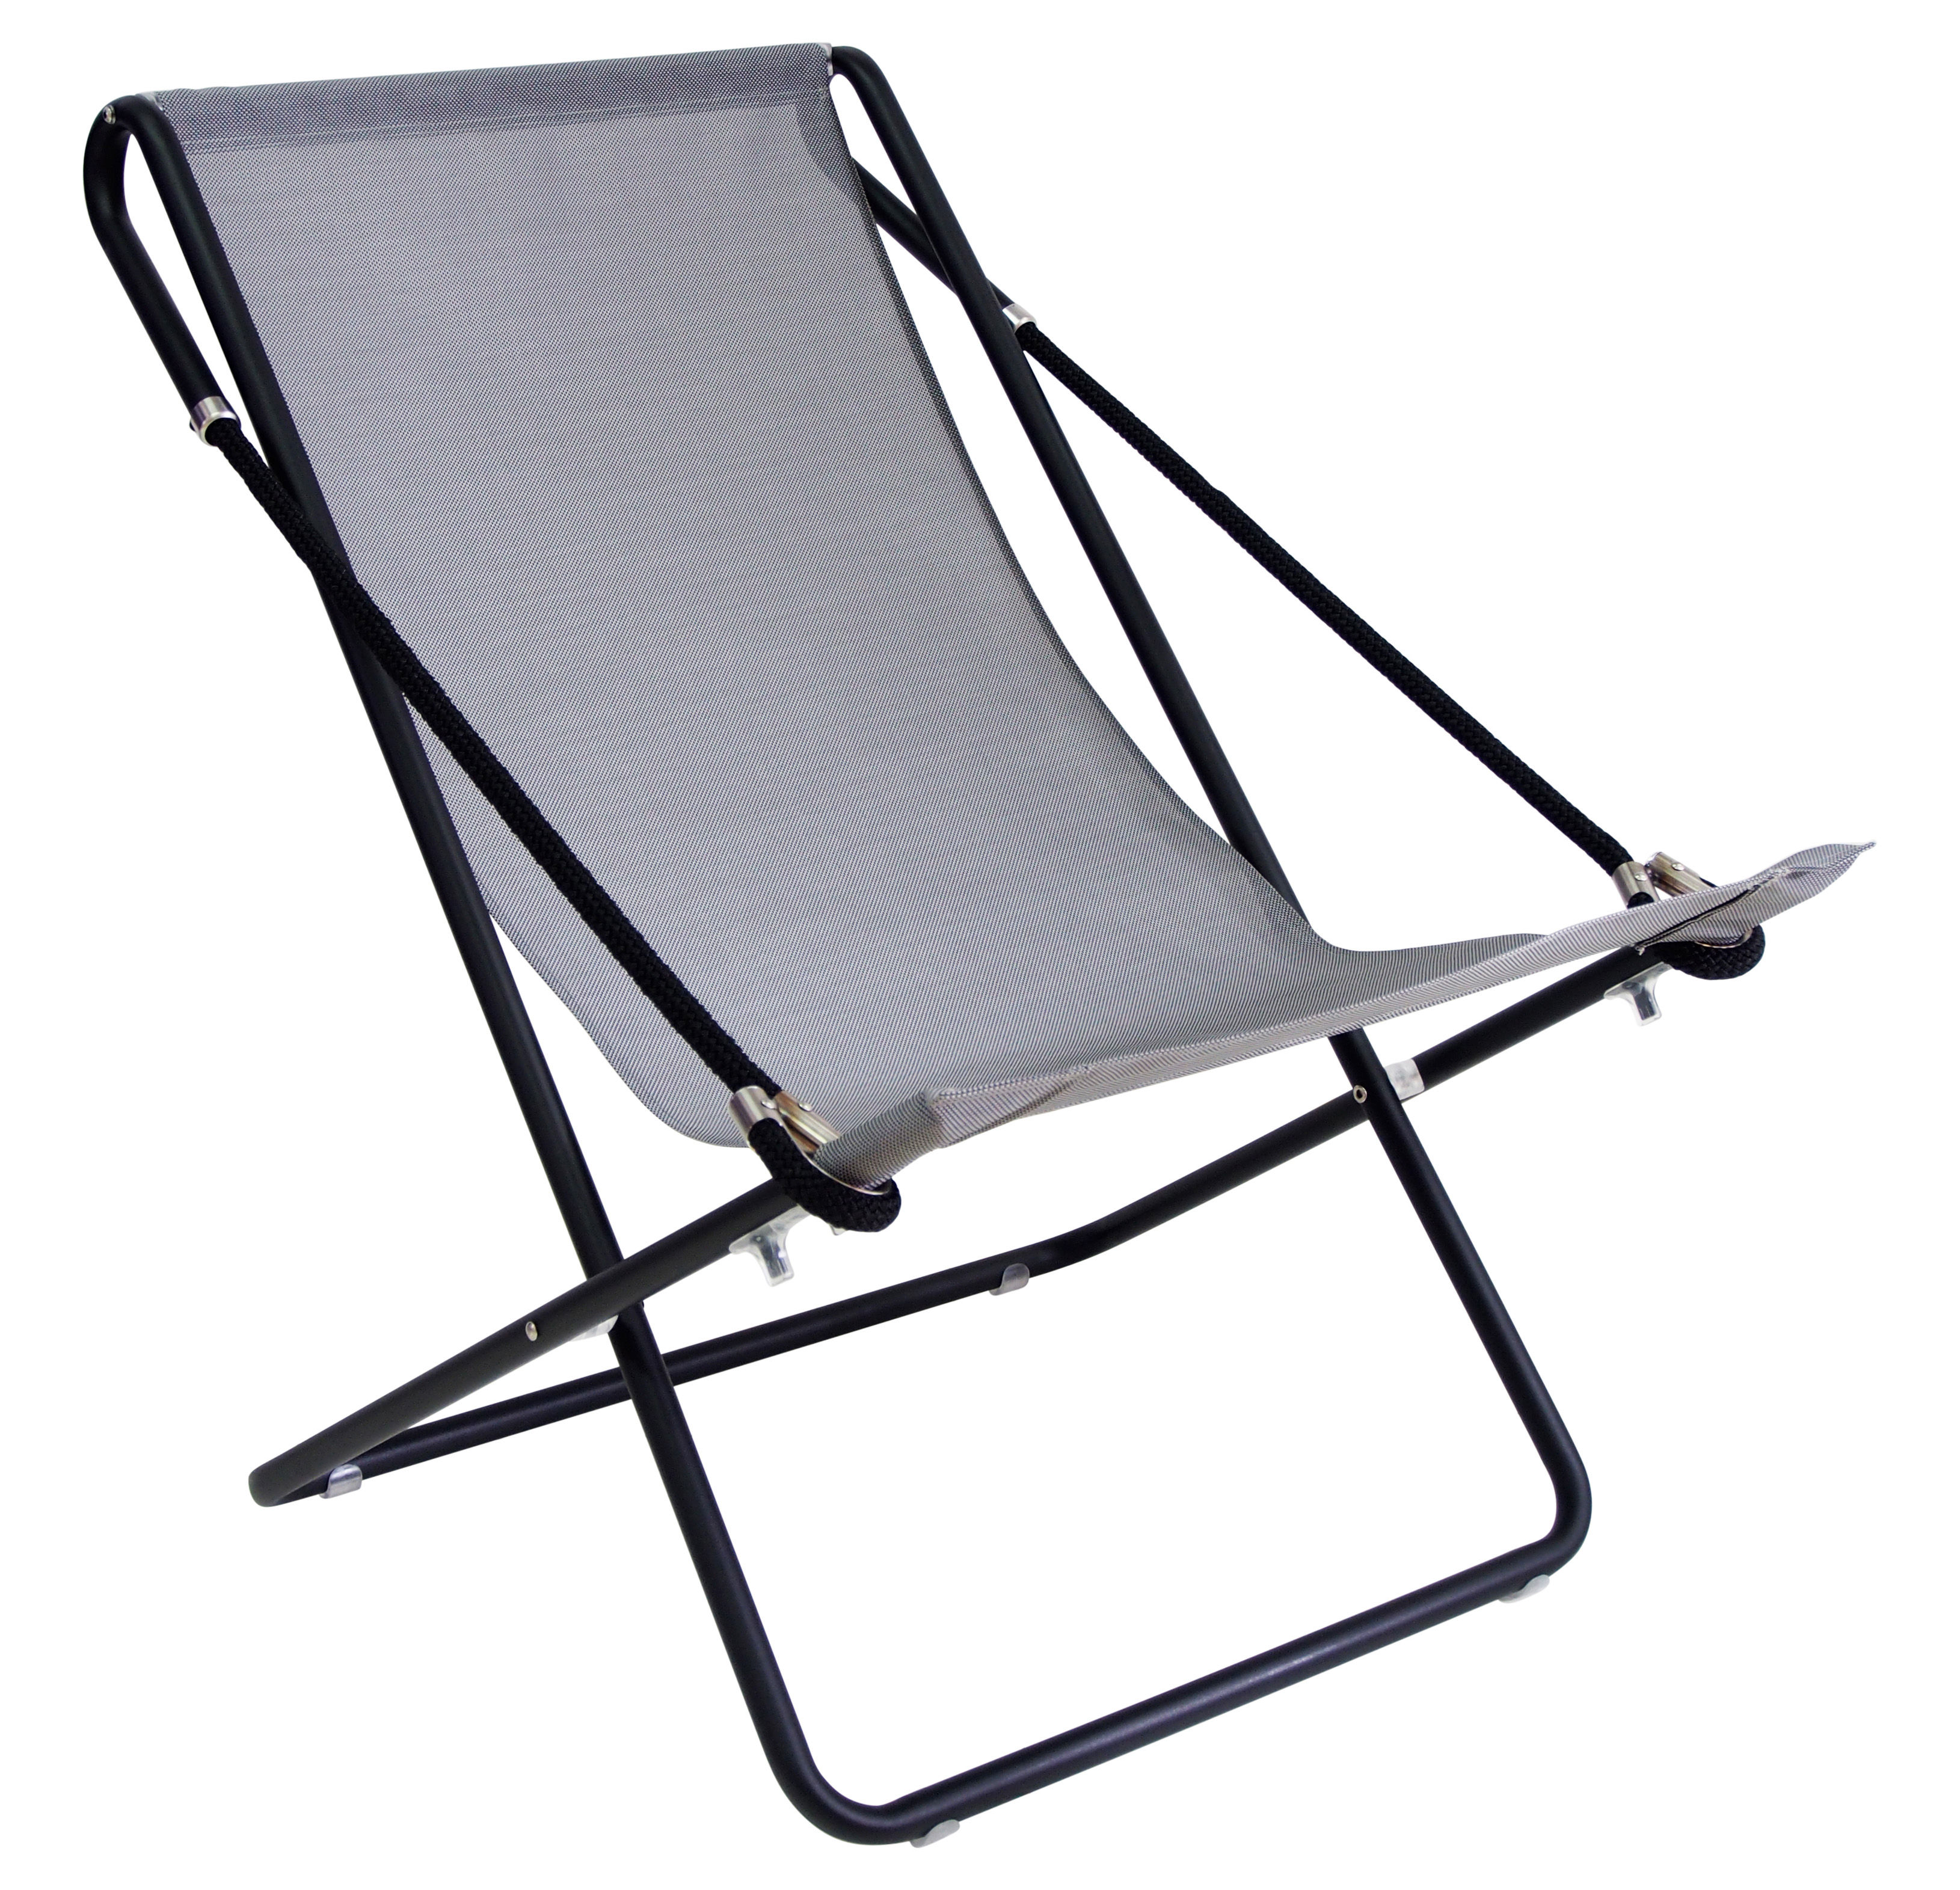 Outdoor - Sun Loungers & Hammocks - Vetta Reclining chair - Foldable by Emu - Canvas grey /  Structure black - Cloth, Rope, Varnished steel